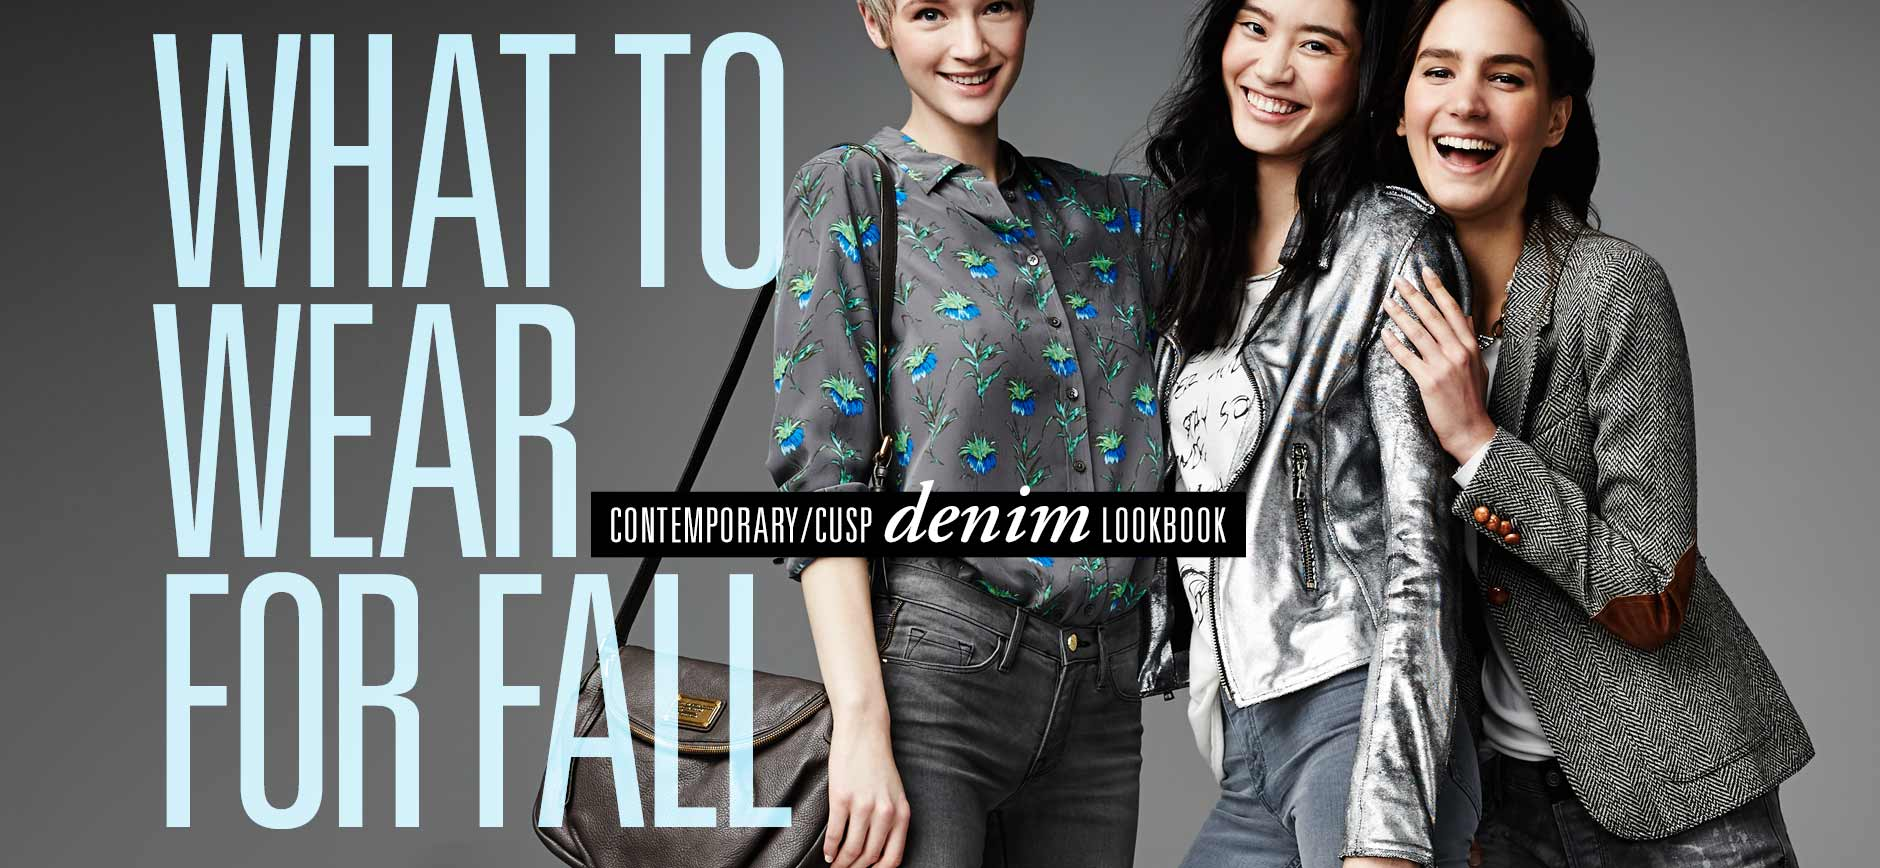 Contemporary/CUSP Denim Trends